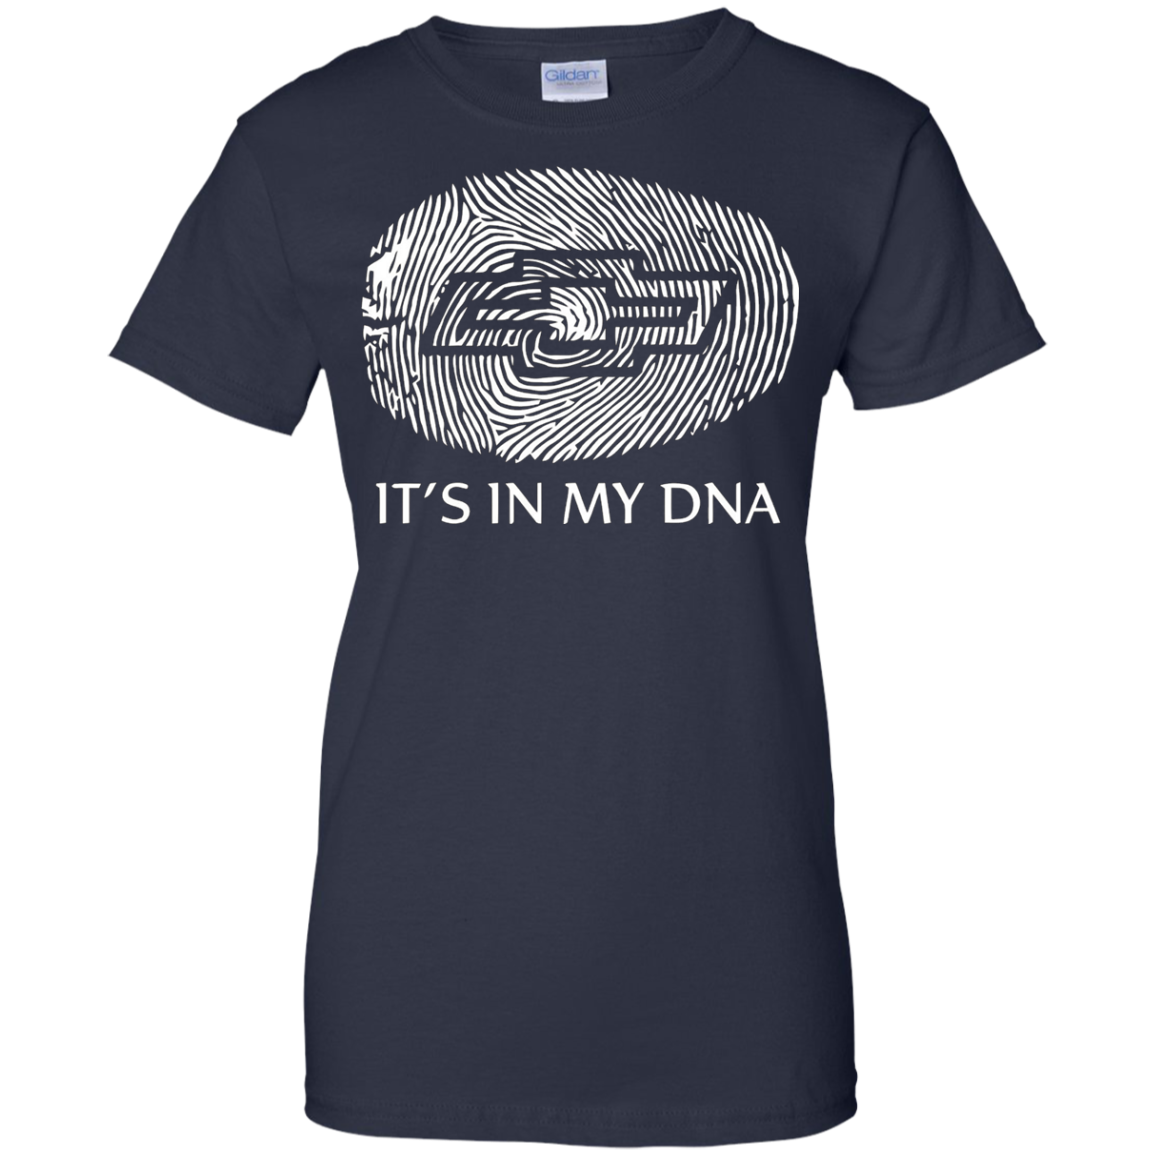 It's in my DNA - Chevy